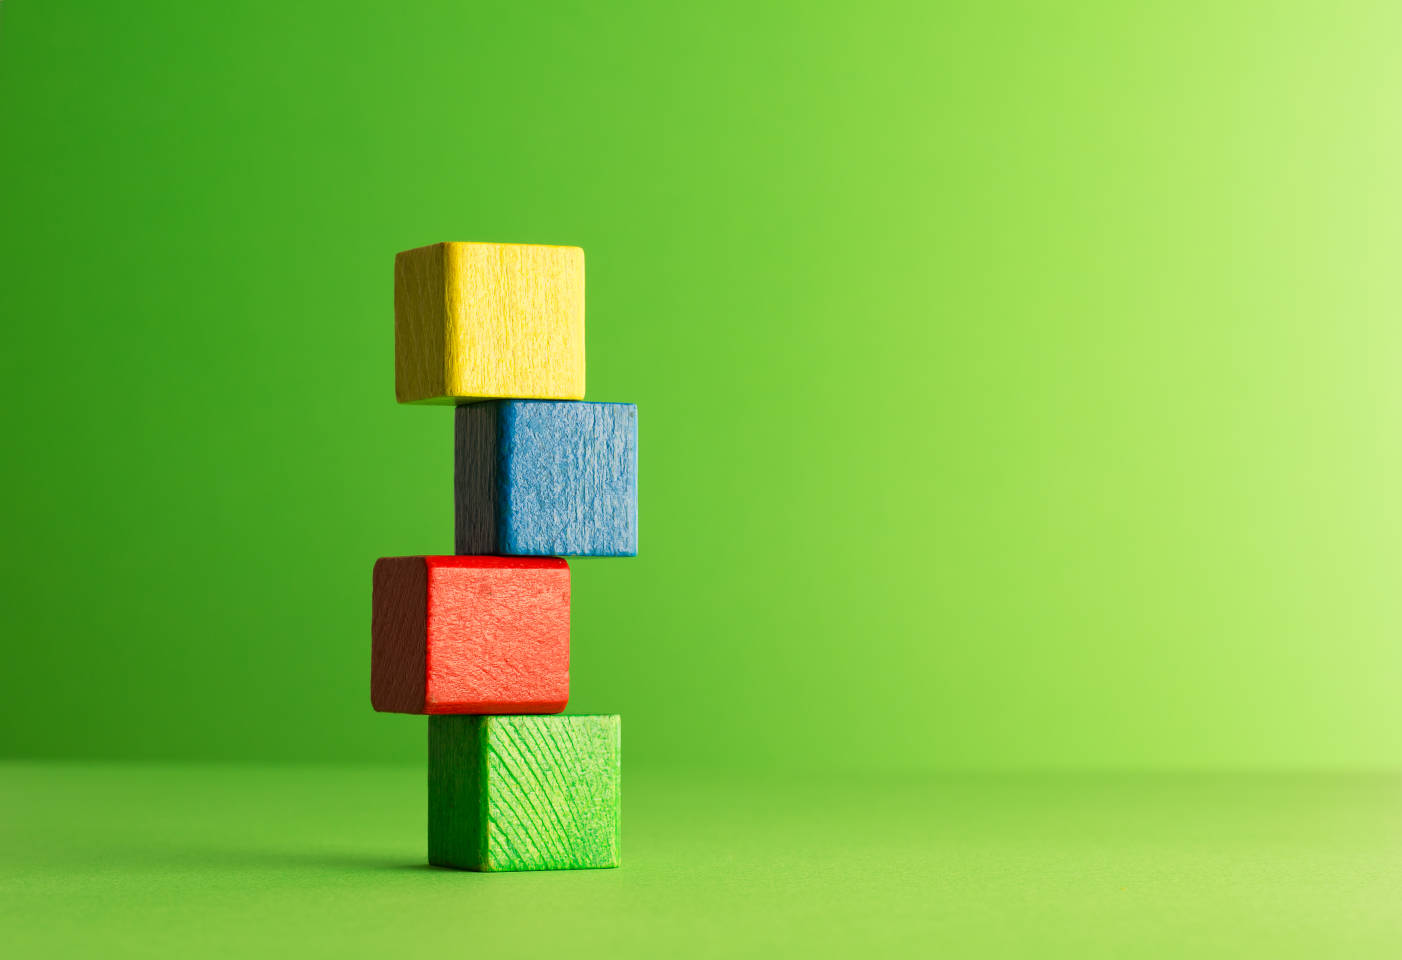 building blocks on green background